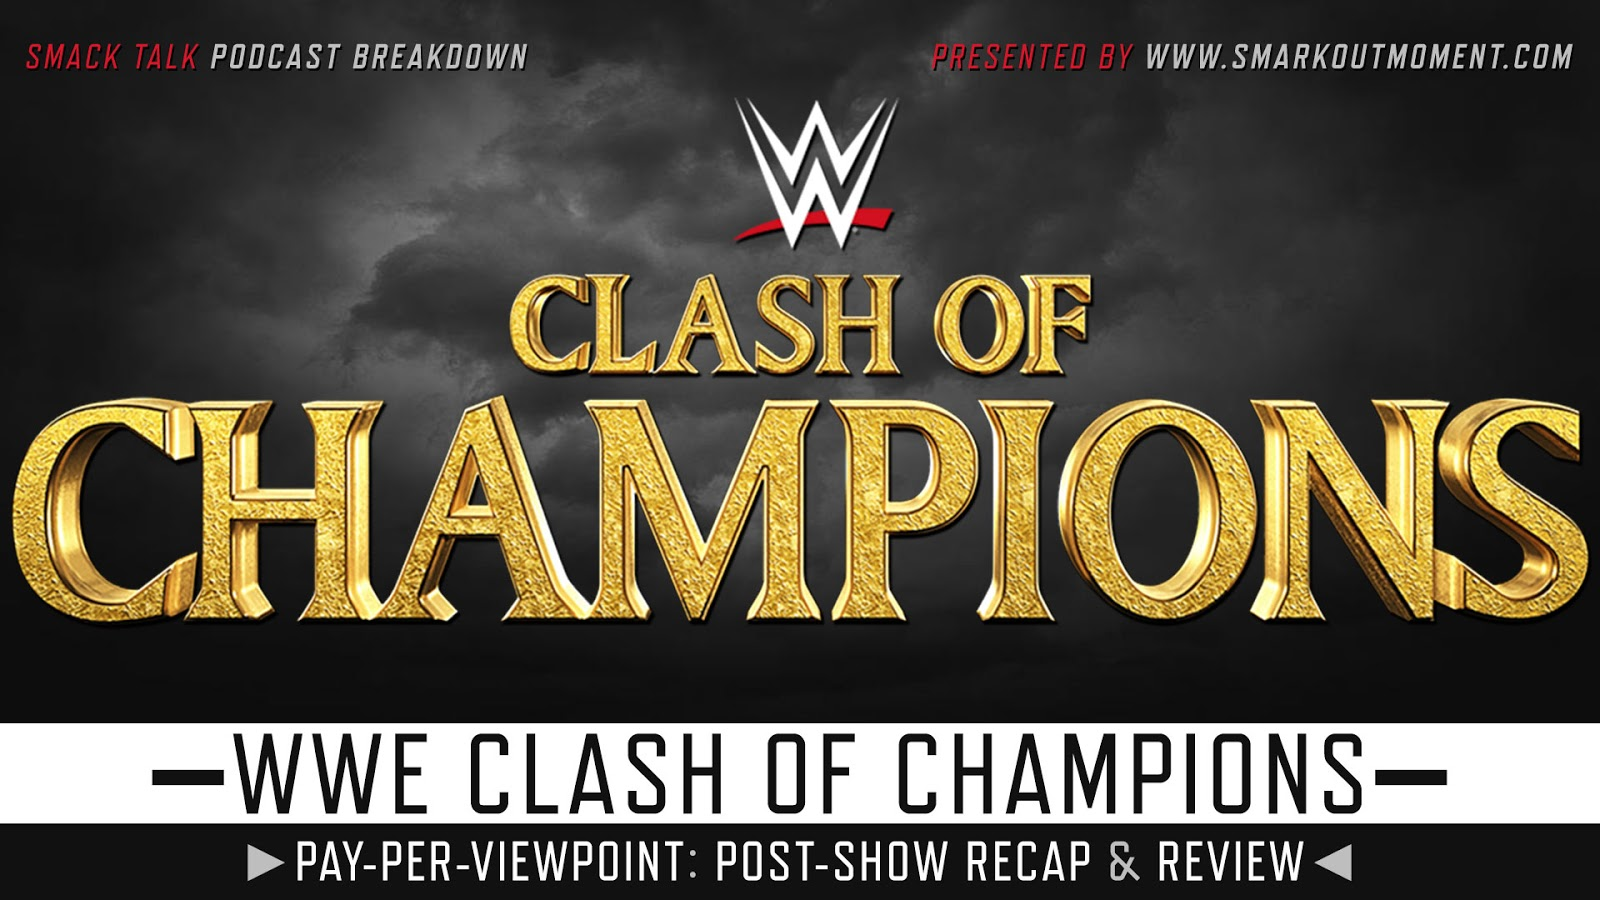 WWE Clash of Champions 2020 Recap and Review Podcast